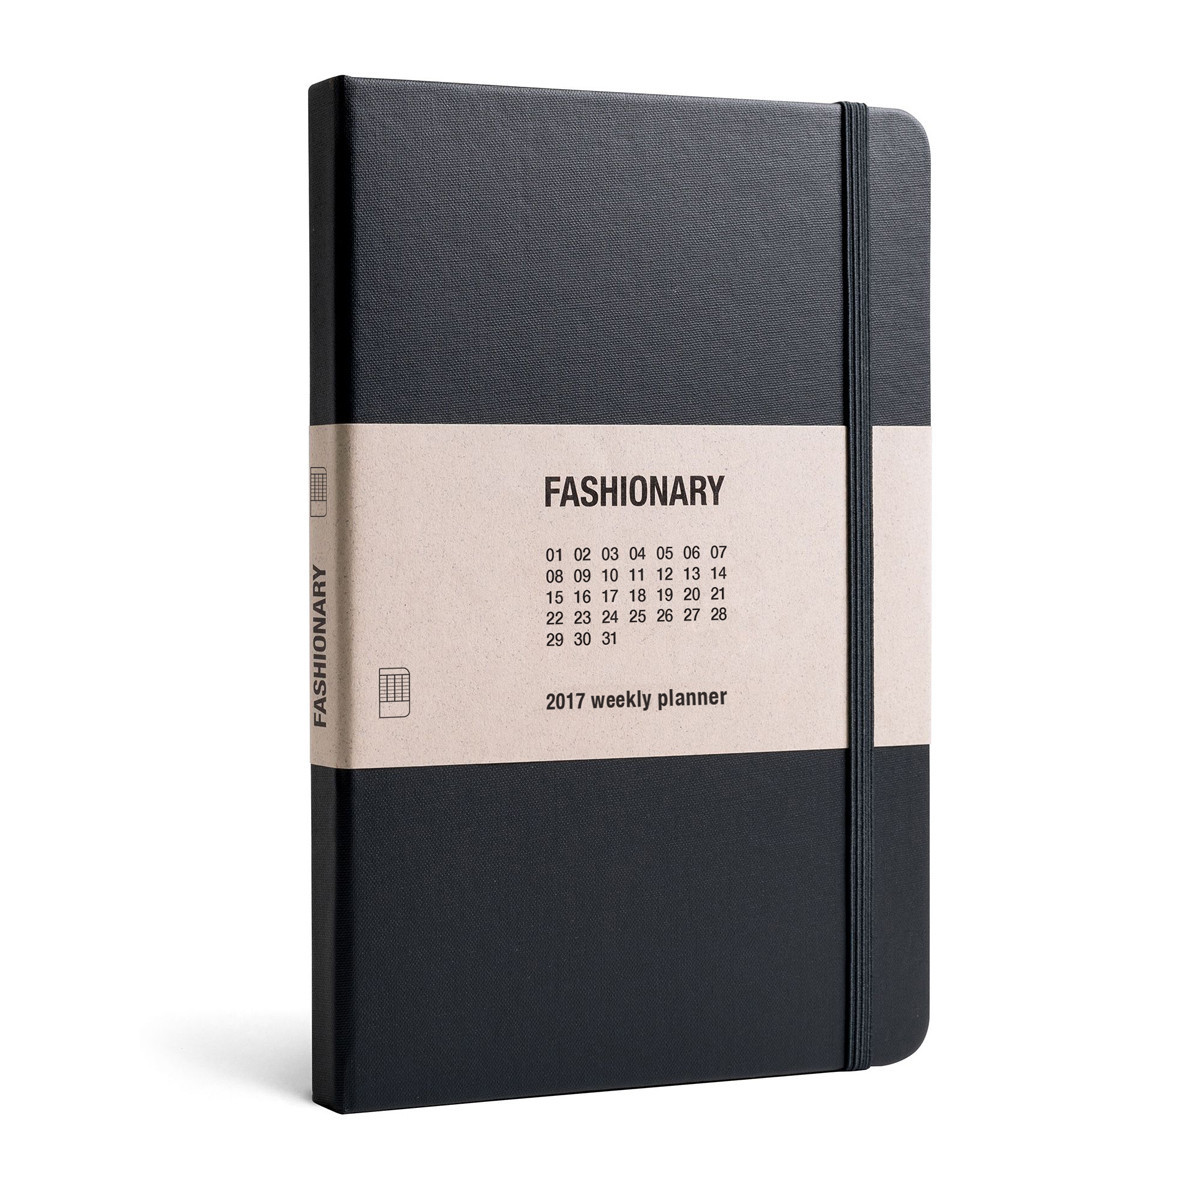 FASHIONARY A5 WEEKLY PLANNER /ANGLAIS